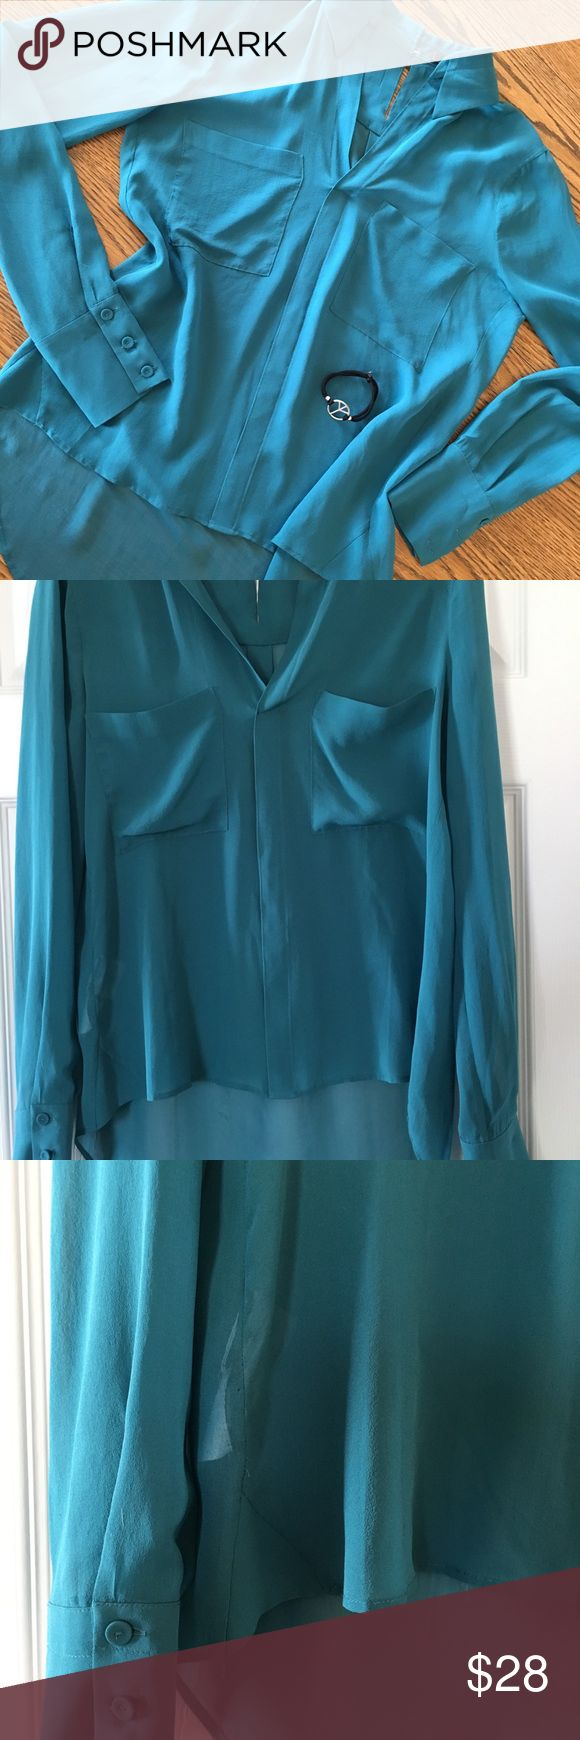 BCBG Teal Blouse XS Worn Once Emma Style Picture doesn't do justice, worn once XS Teal BCBG Maxazria Emma Style Tahiti Blue. The green shirt and gold shirt are to show more of the shirt style.  This is the tahiti blue teal color. BCBGMaxAzria Tops Blouses